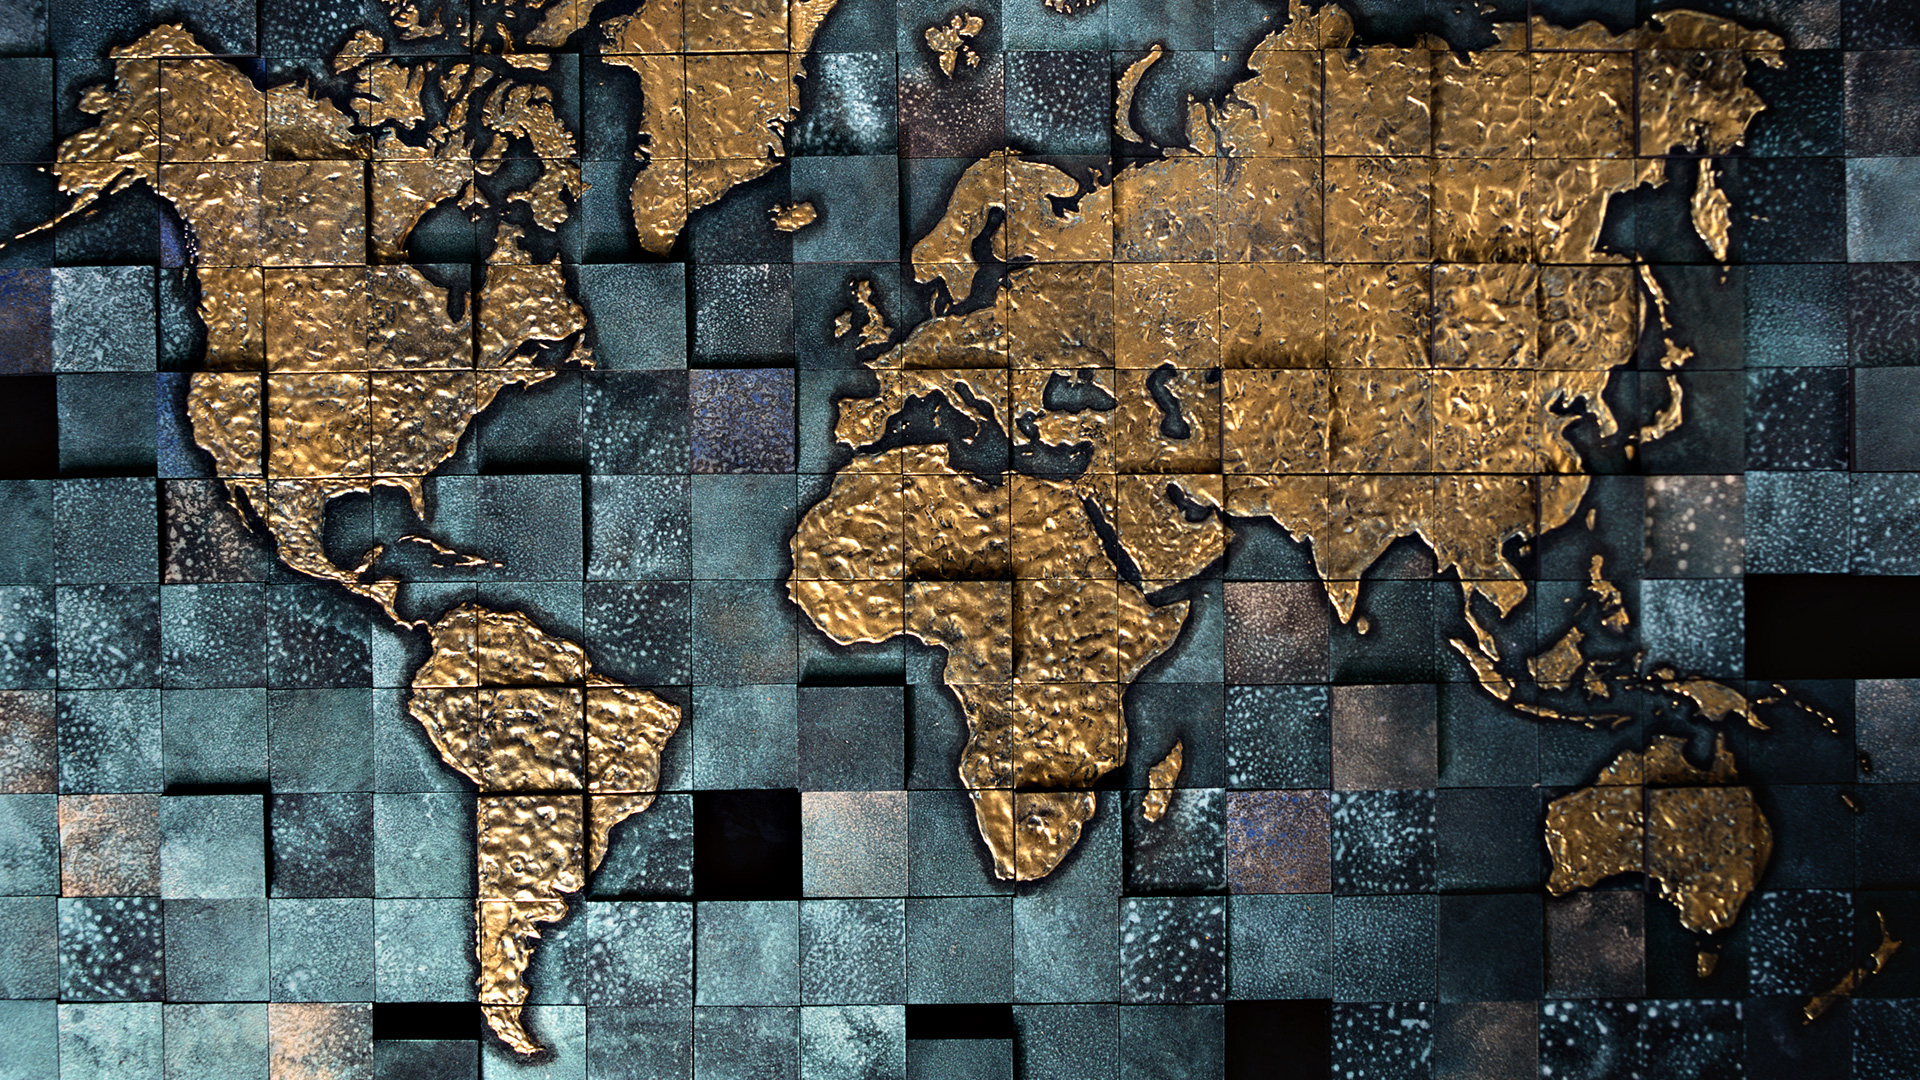 21 fantastic hd world map wallpapers - hdwallsource